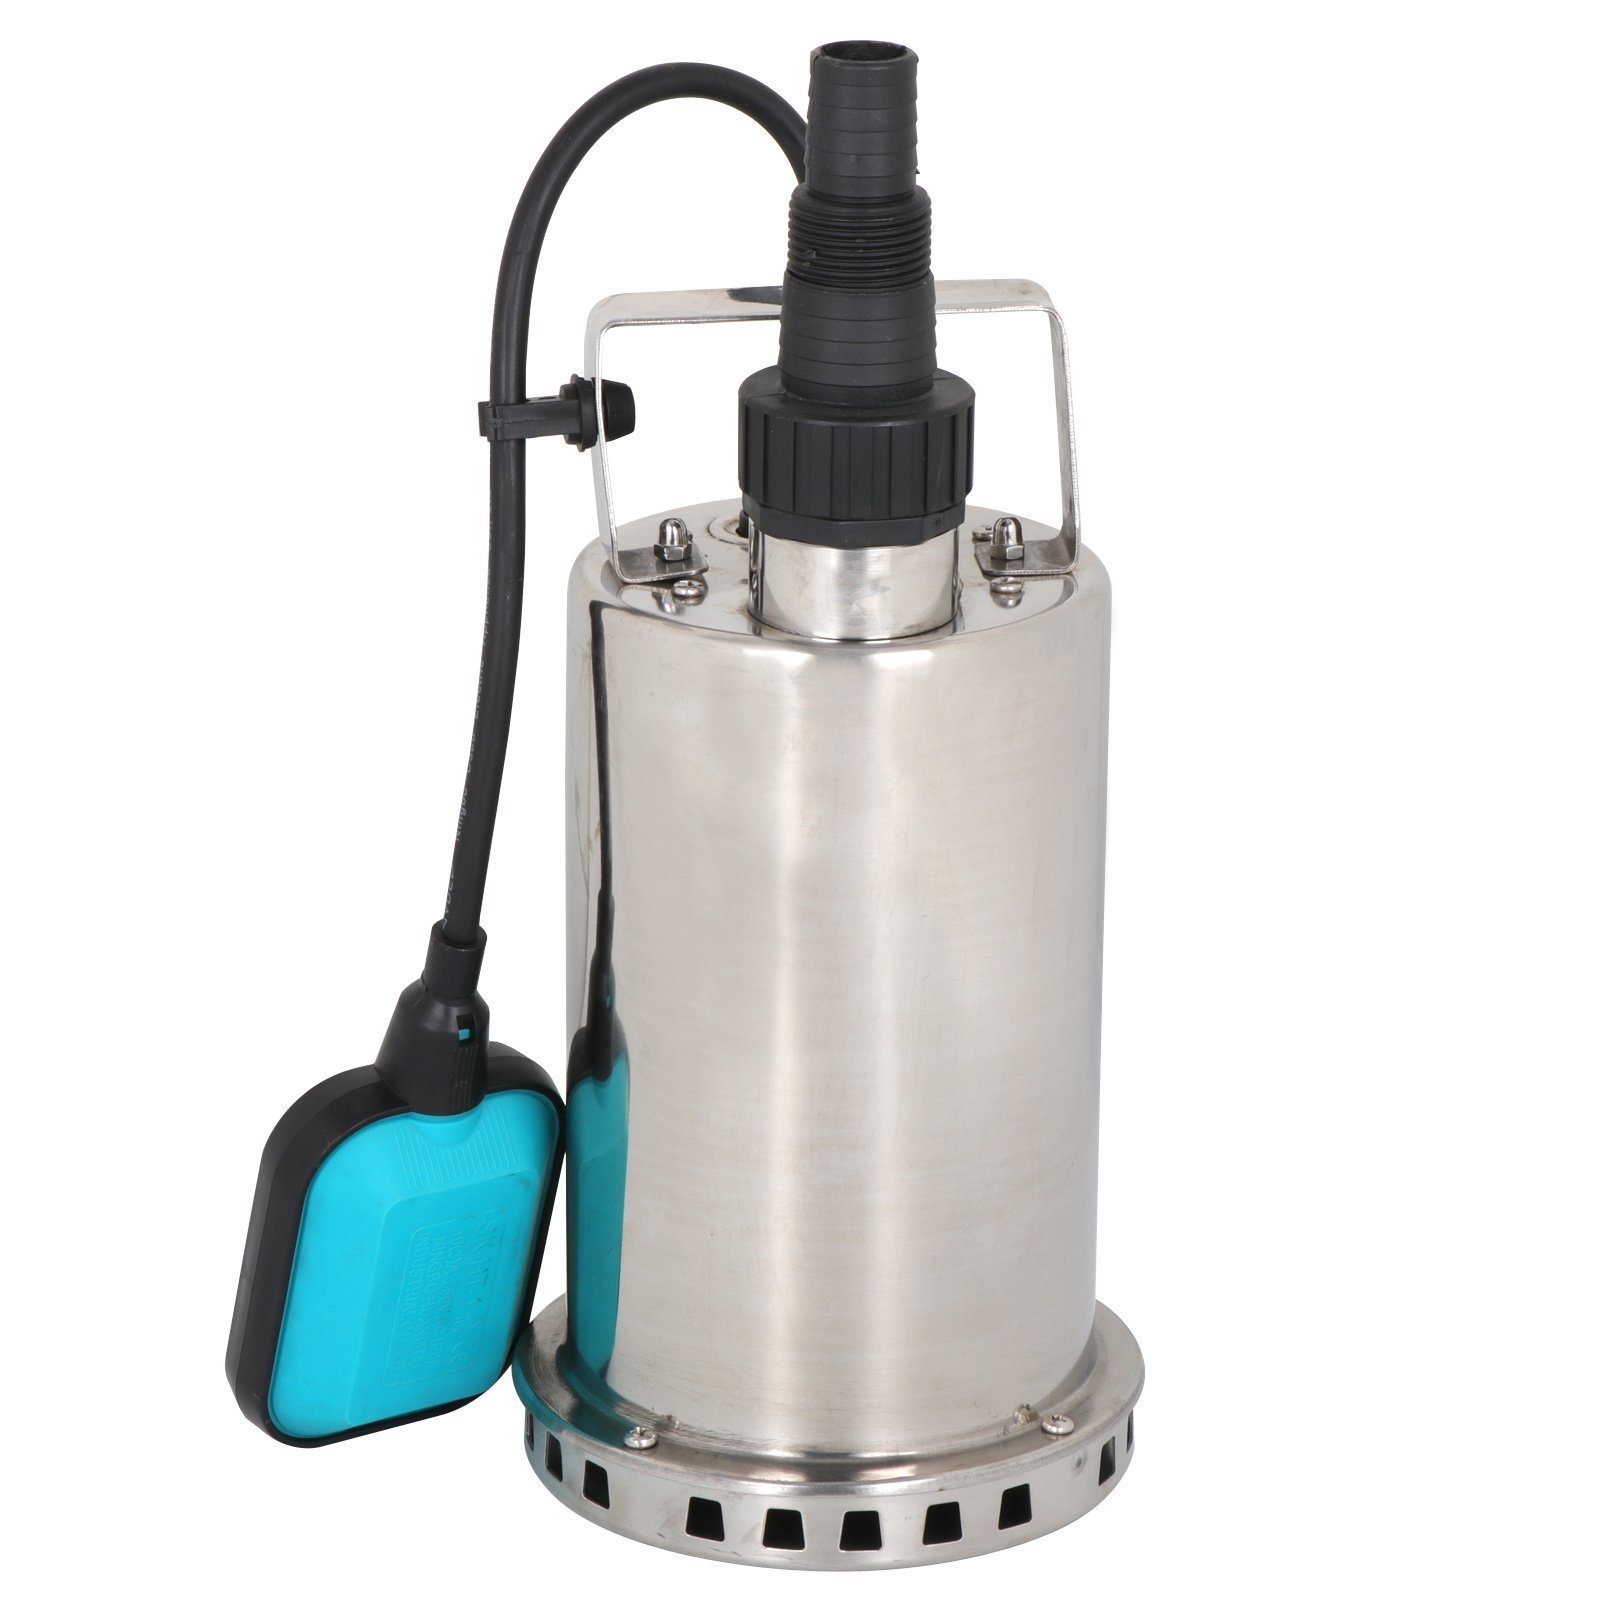 HomGarden 1 HP Stainless Steel Submersible Sump Pump Dirty Clean Water Pump w/ 26ft Cable